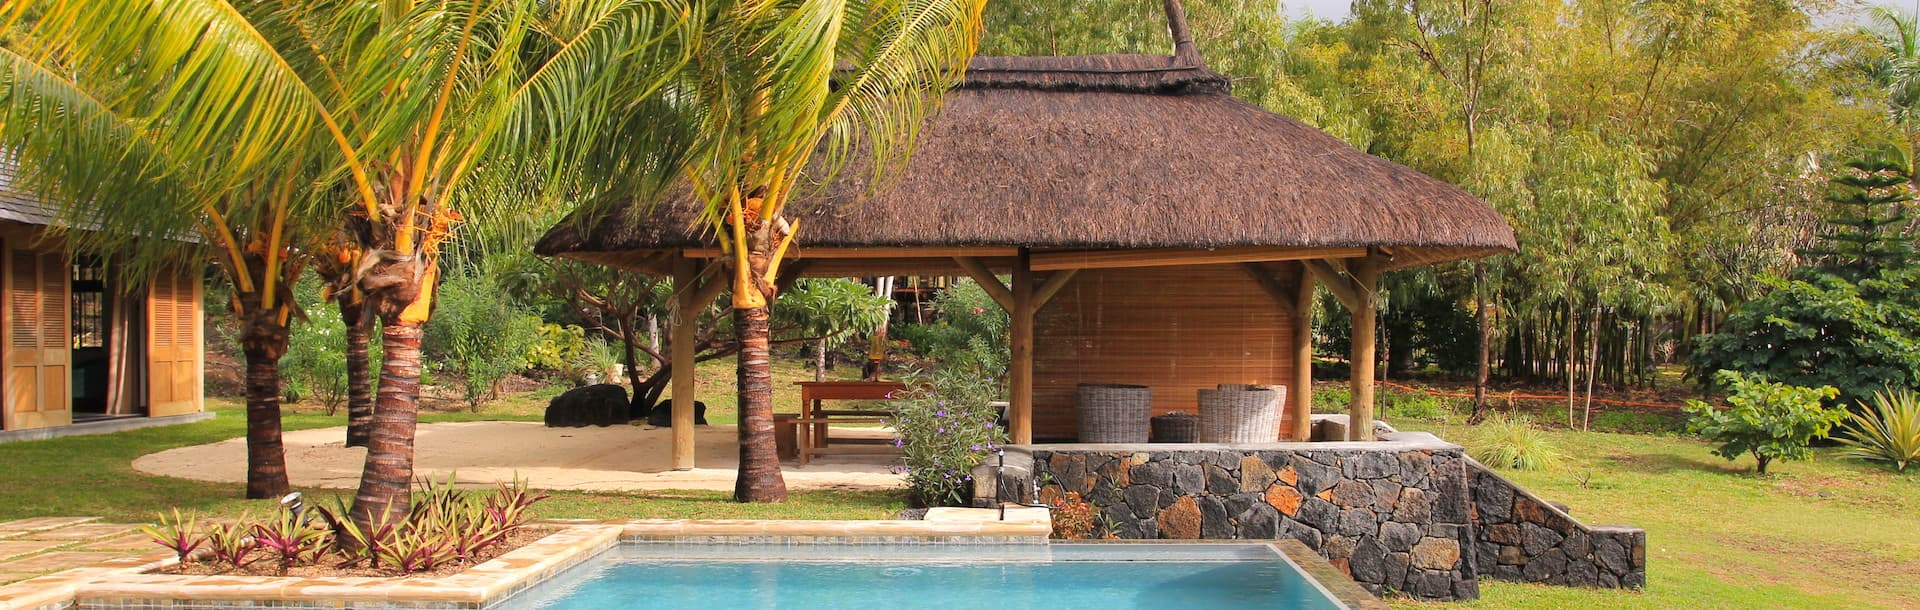 OUR EXCLUSIVE SELECTION OF VILLAS IN MAURITIUS